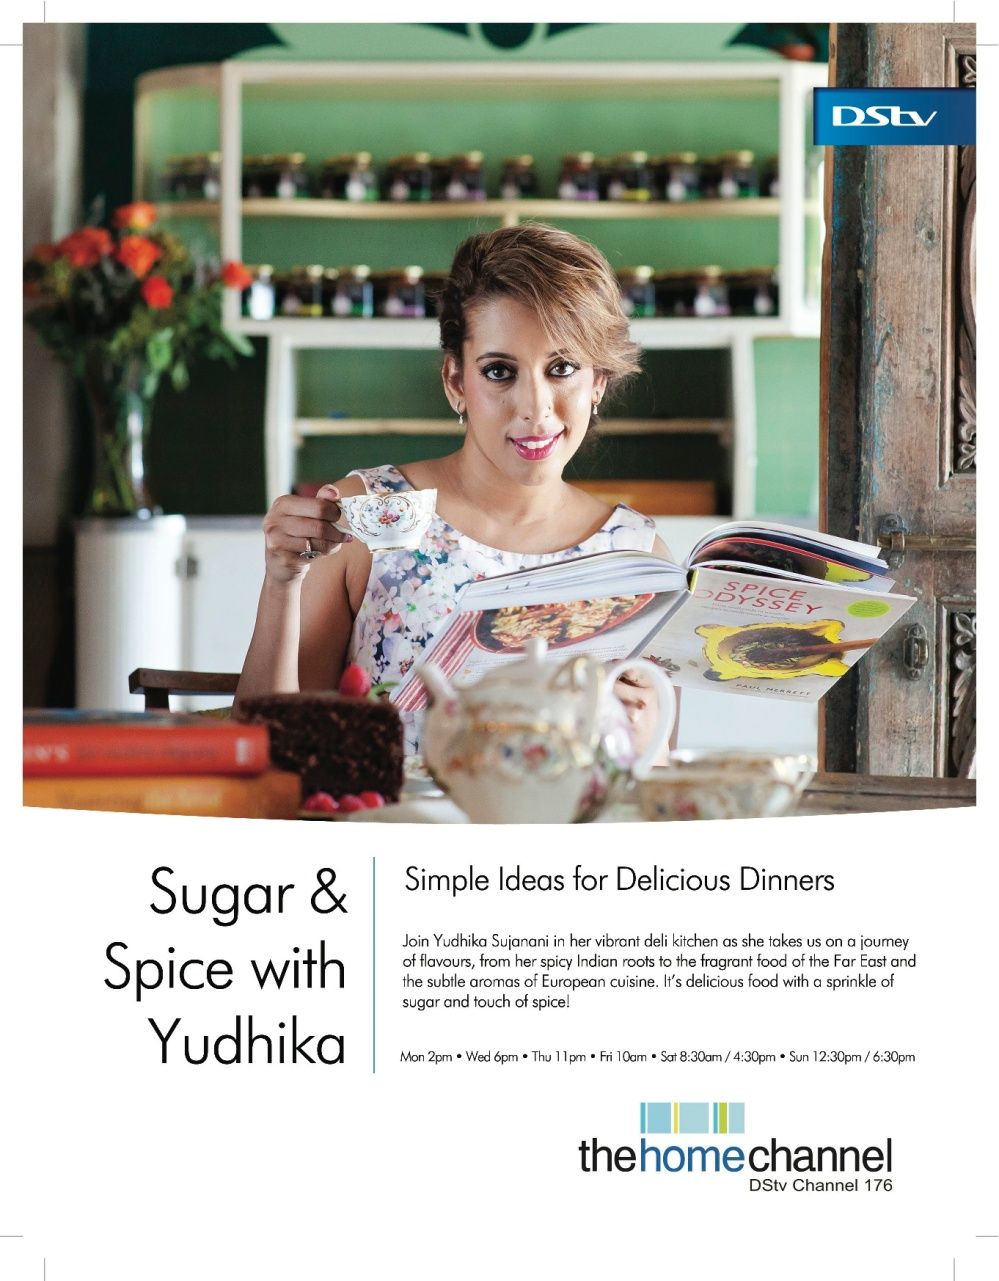 Yudhika's Sugar & Spice...check out the show times on DSTV's Channel 176